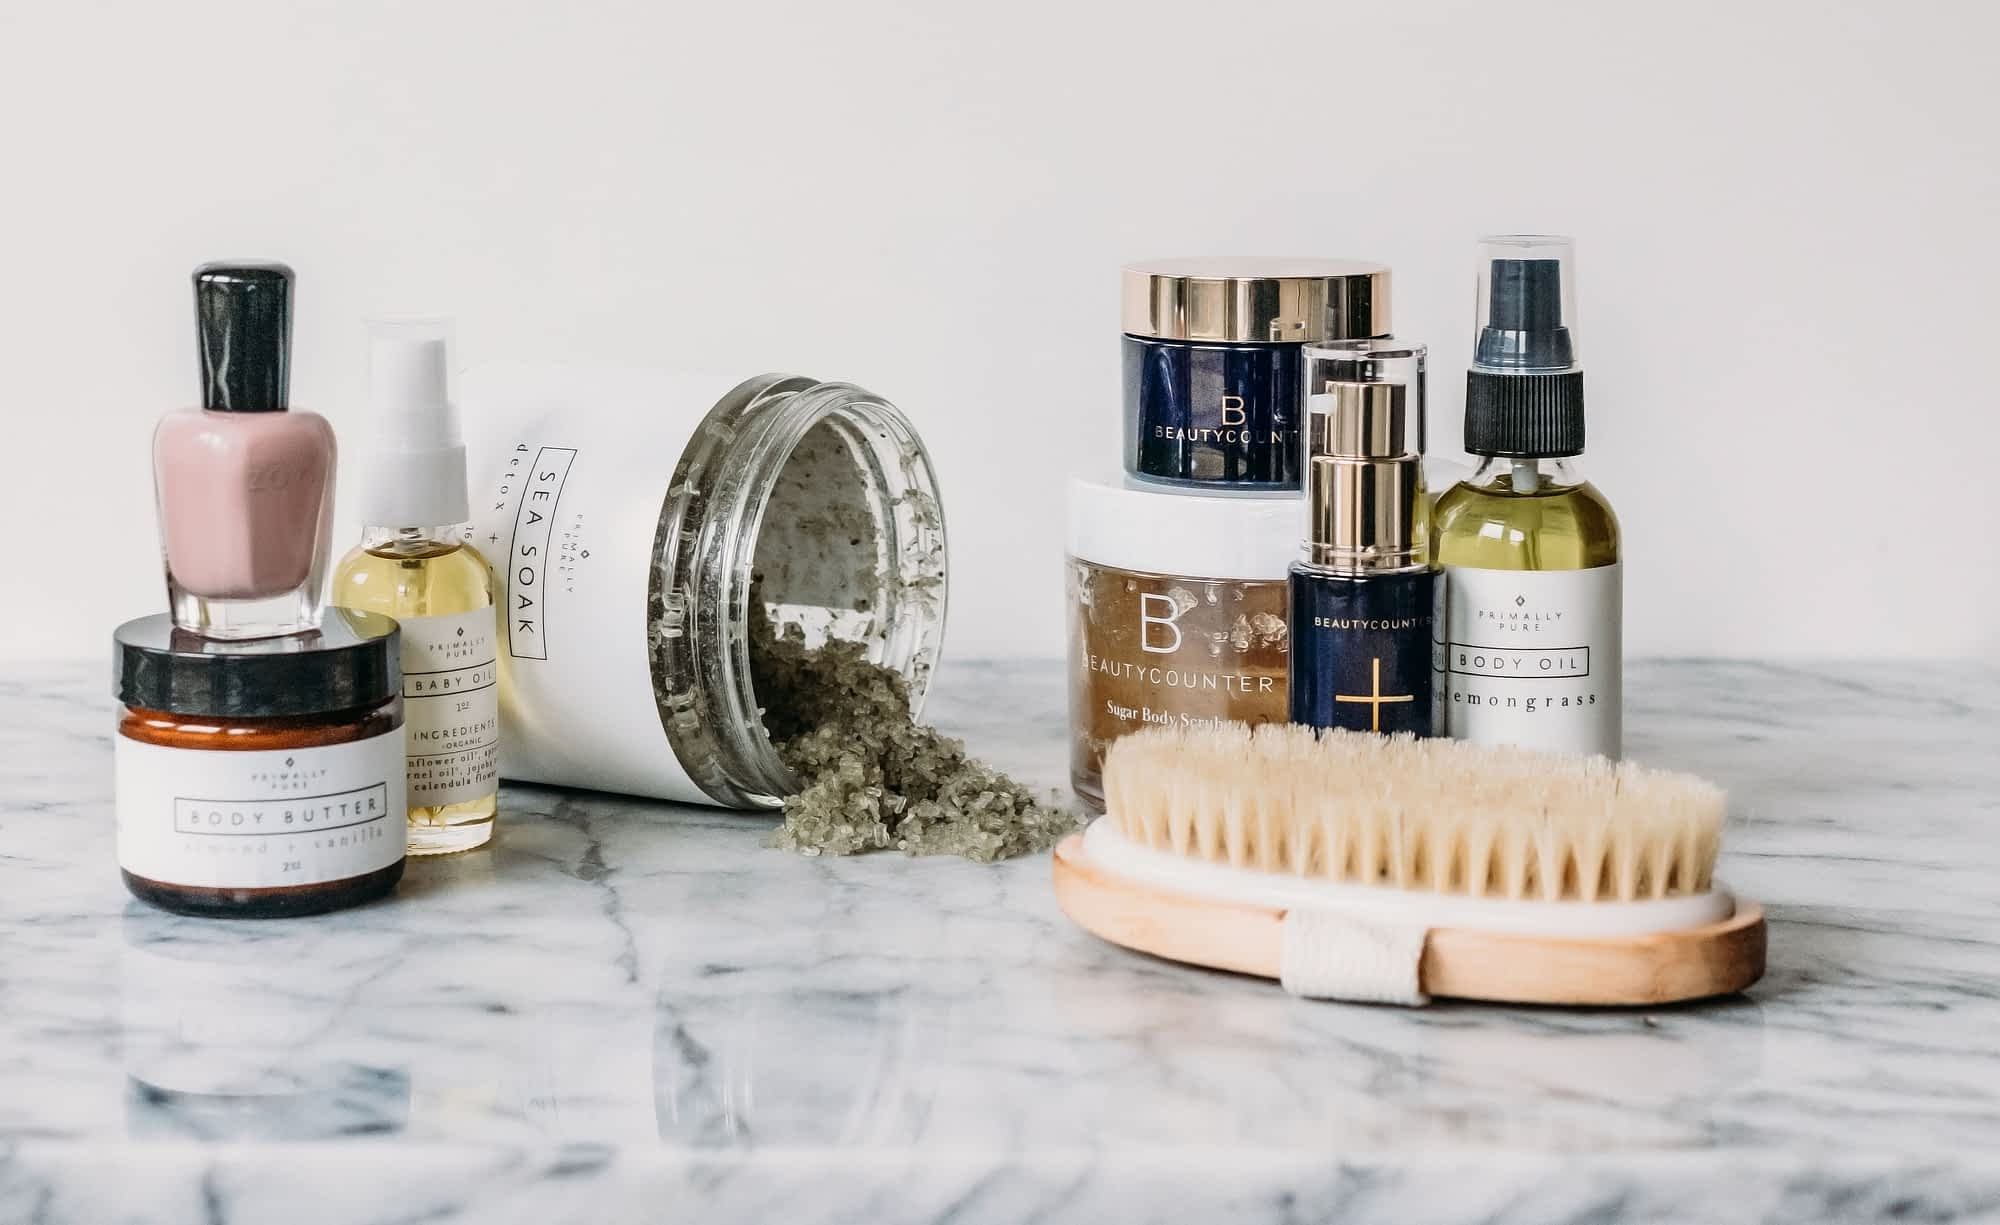 safer beauty items including nail polish, body butter, and body scrub on a marble surface